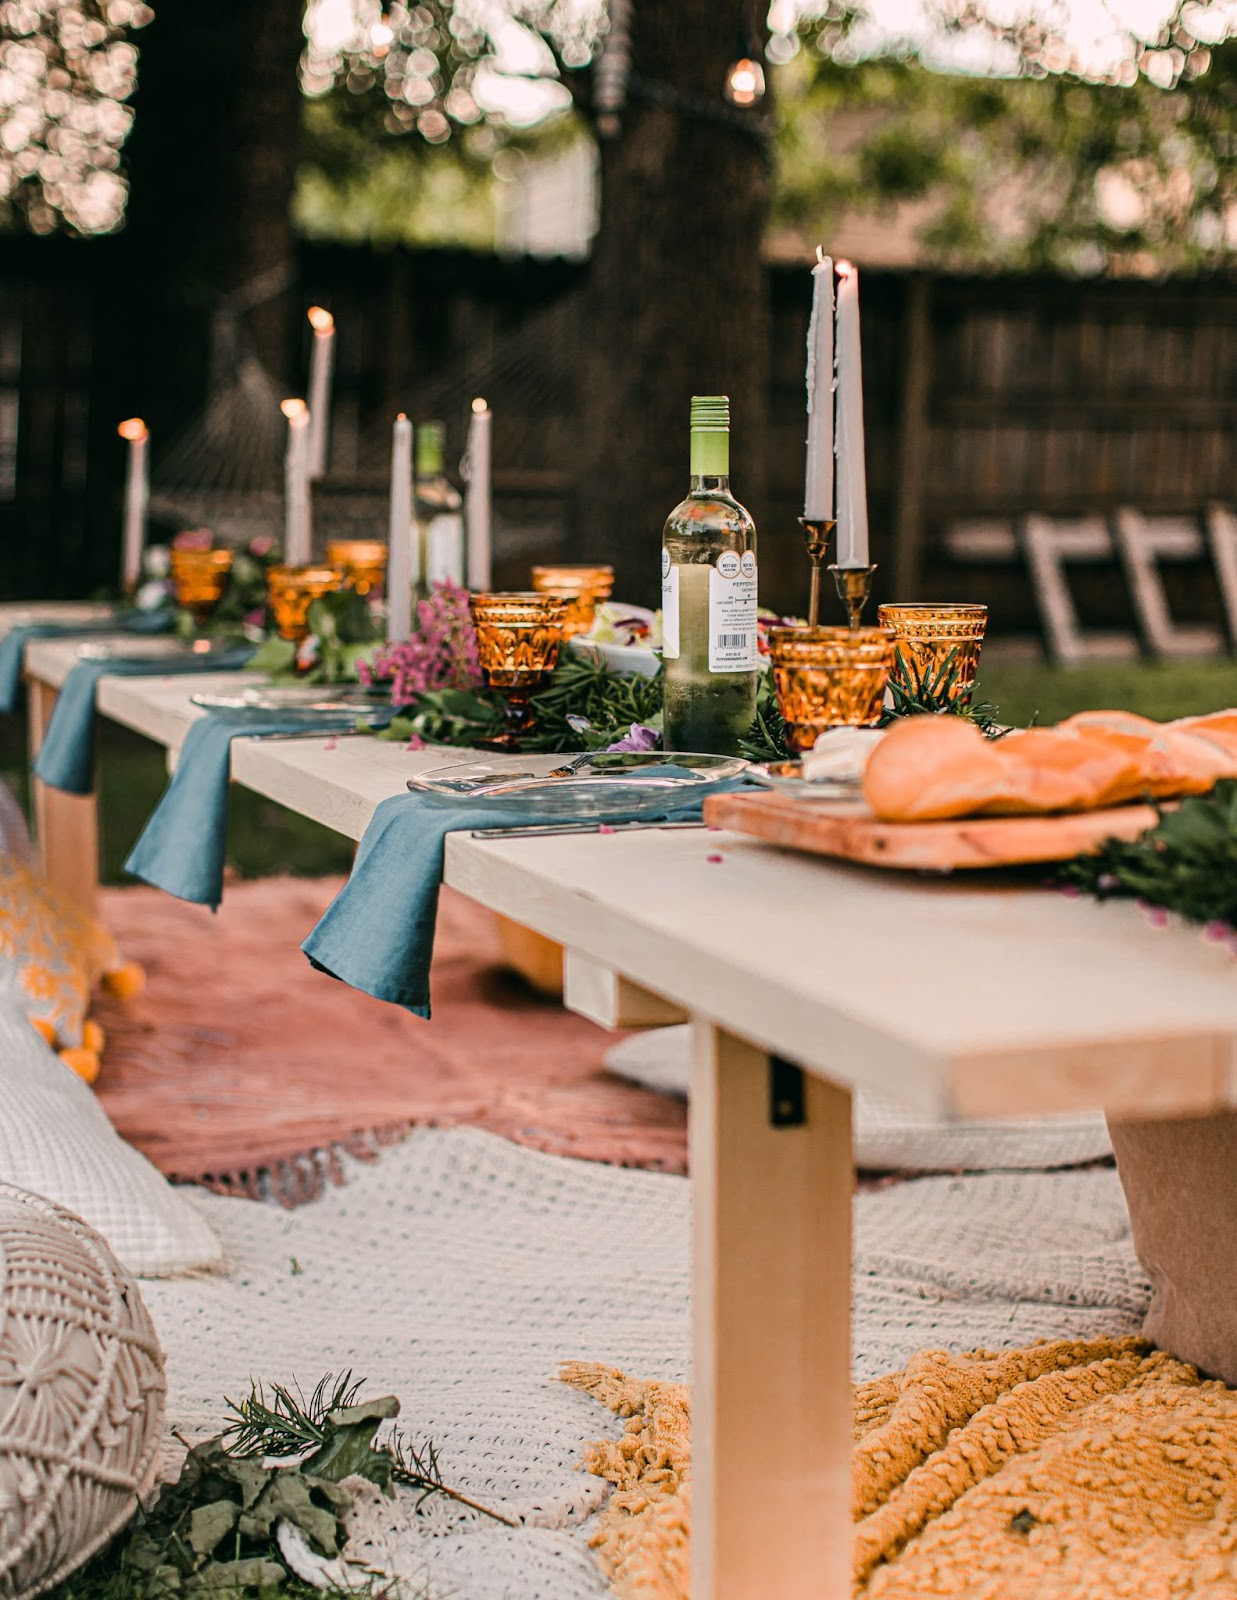 A table with food, wine and candles in a garden